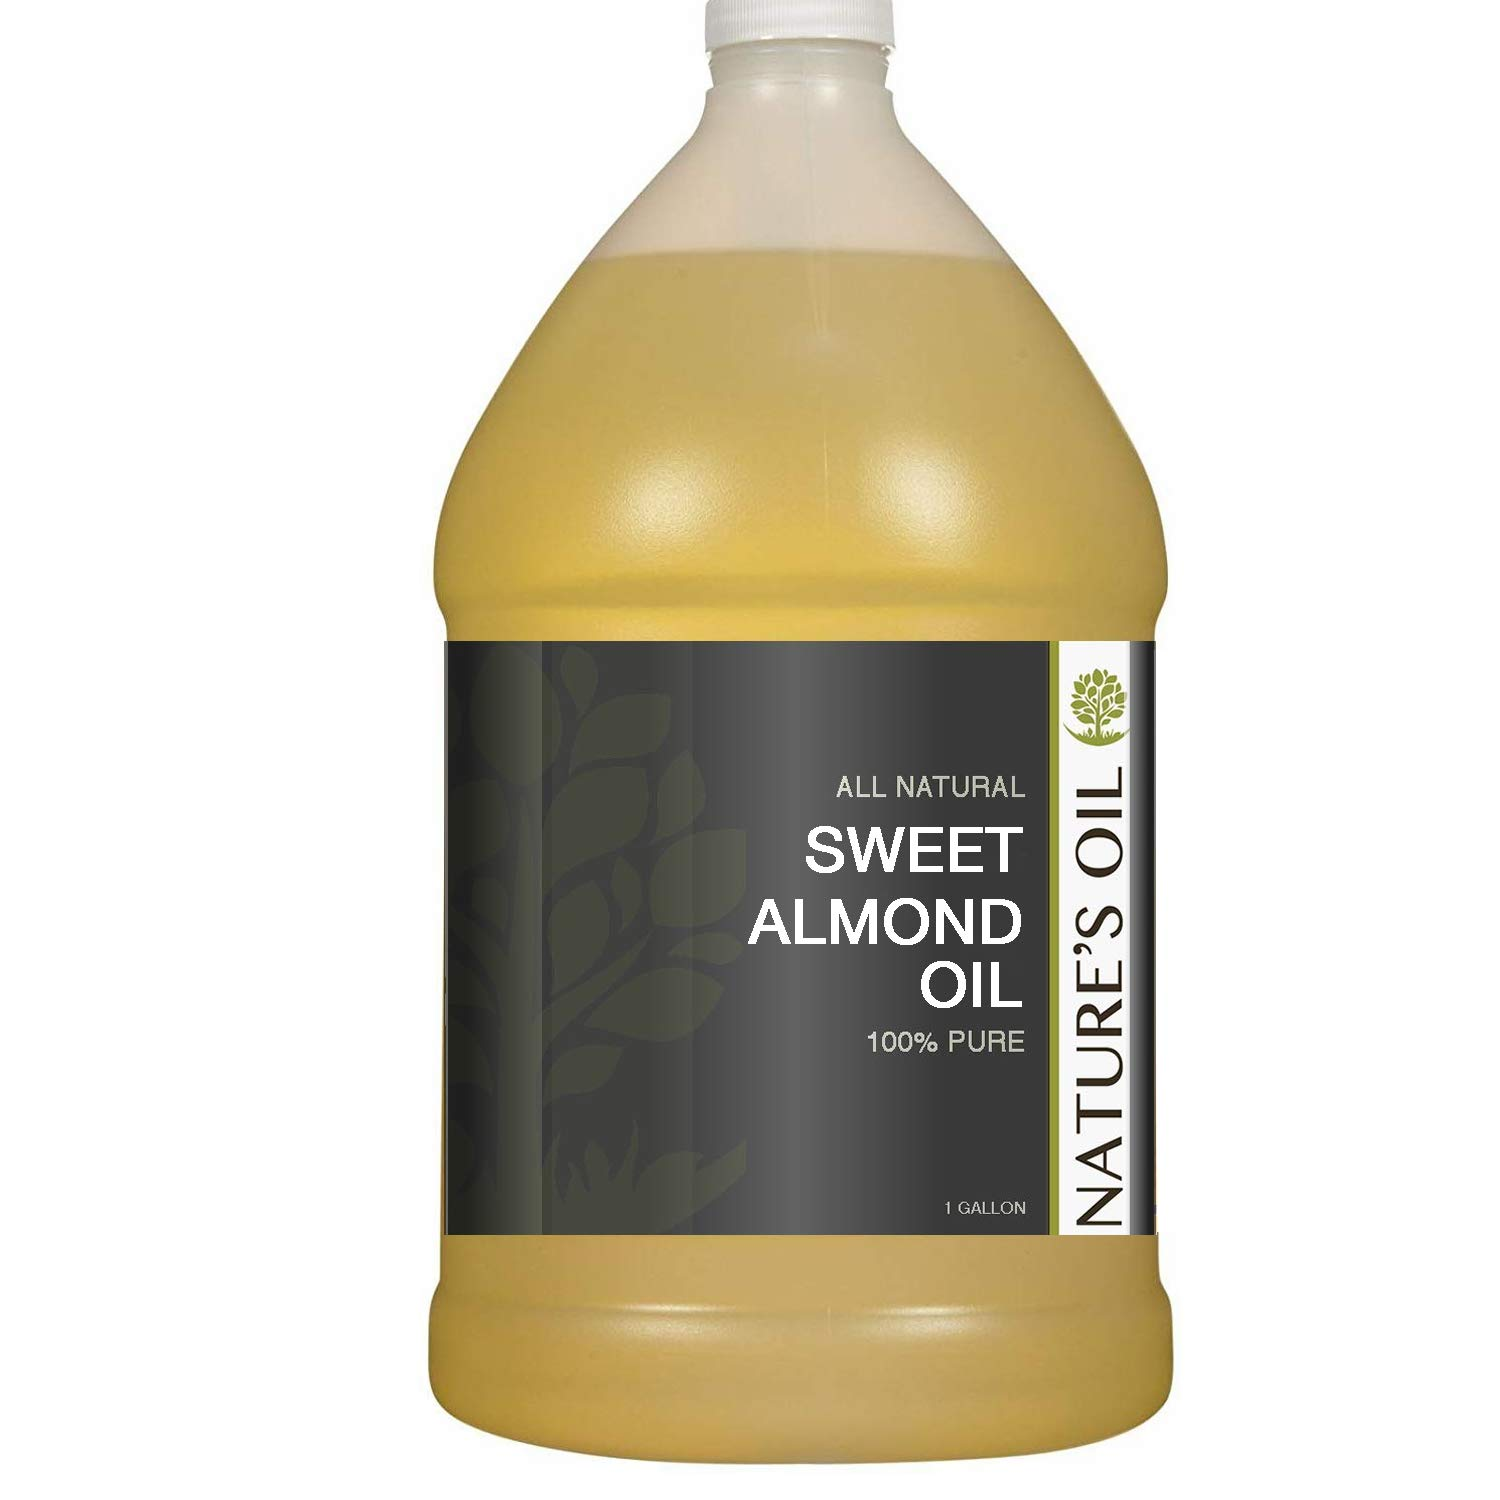 Sweet Almond Oil Gallon - 100% Pure Carrier for Massage, Diluting Essential Oils, Aromatherapy, Hair & Skin Care Benefits, Moisturizer & Softener - by Nature's Oil. by Nature's Oil